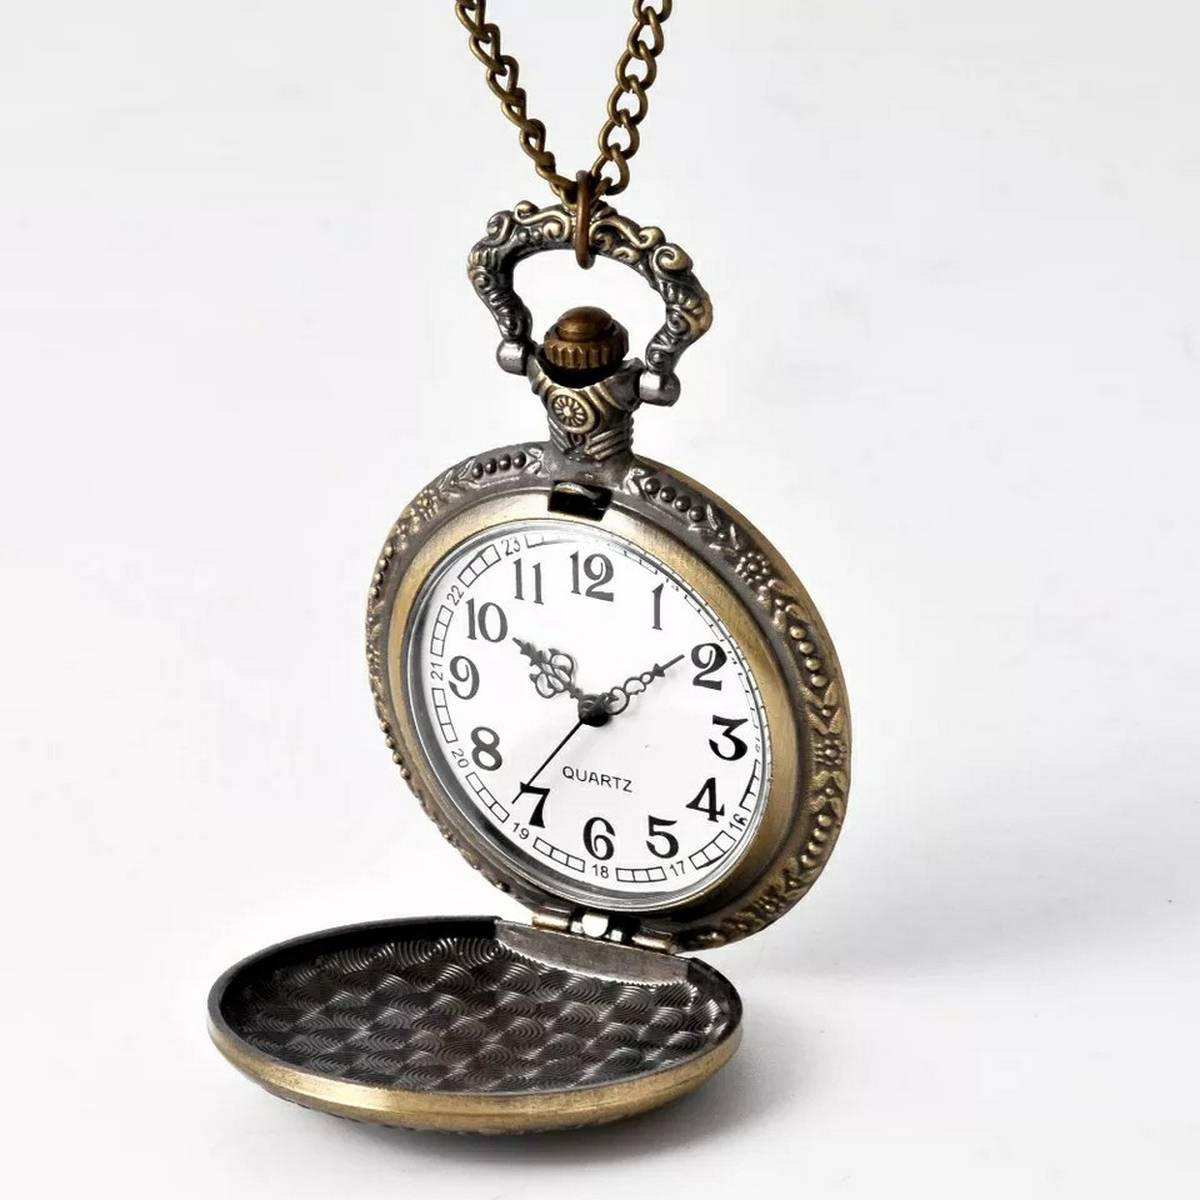 Antique Quartz Pocket Watch Chain Neck_lace Watch - Unisex - Case Design Gold Plated / IP Black Pated with Caring Case.